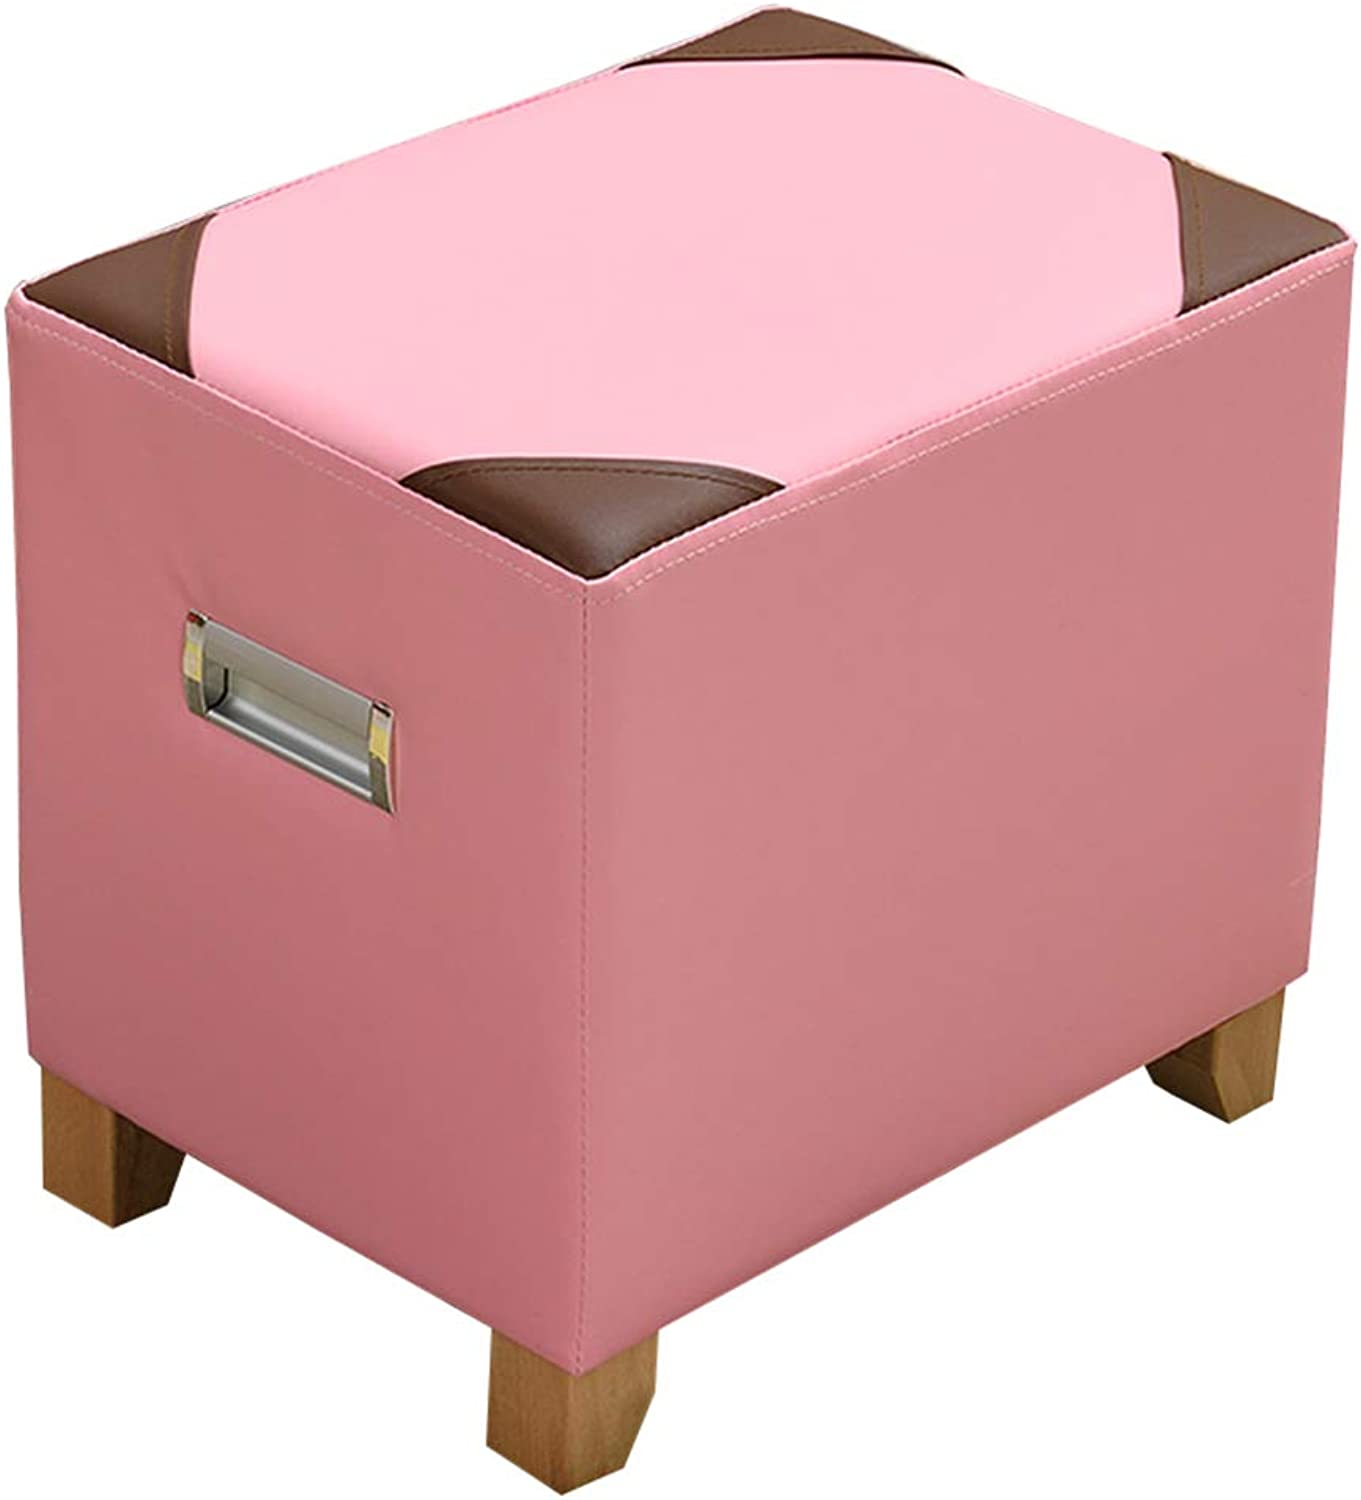 Stool Creative Fashion Sofa Stool Thick Solid Wood Square Short Dunzi Home Living Room Change shoes Bench WEIYV (color   Pink, Size   40  30  40cm)